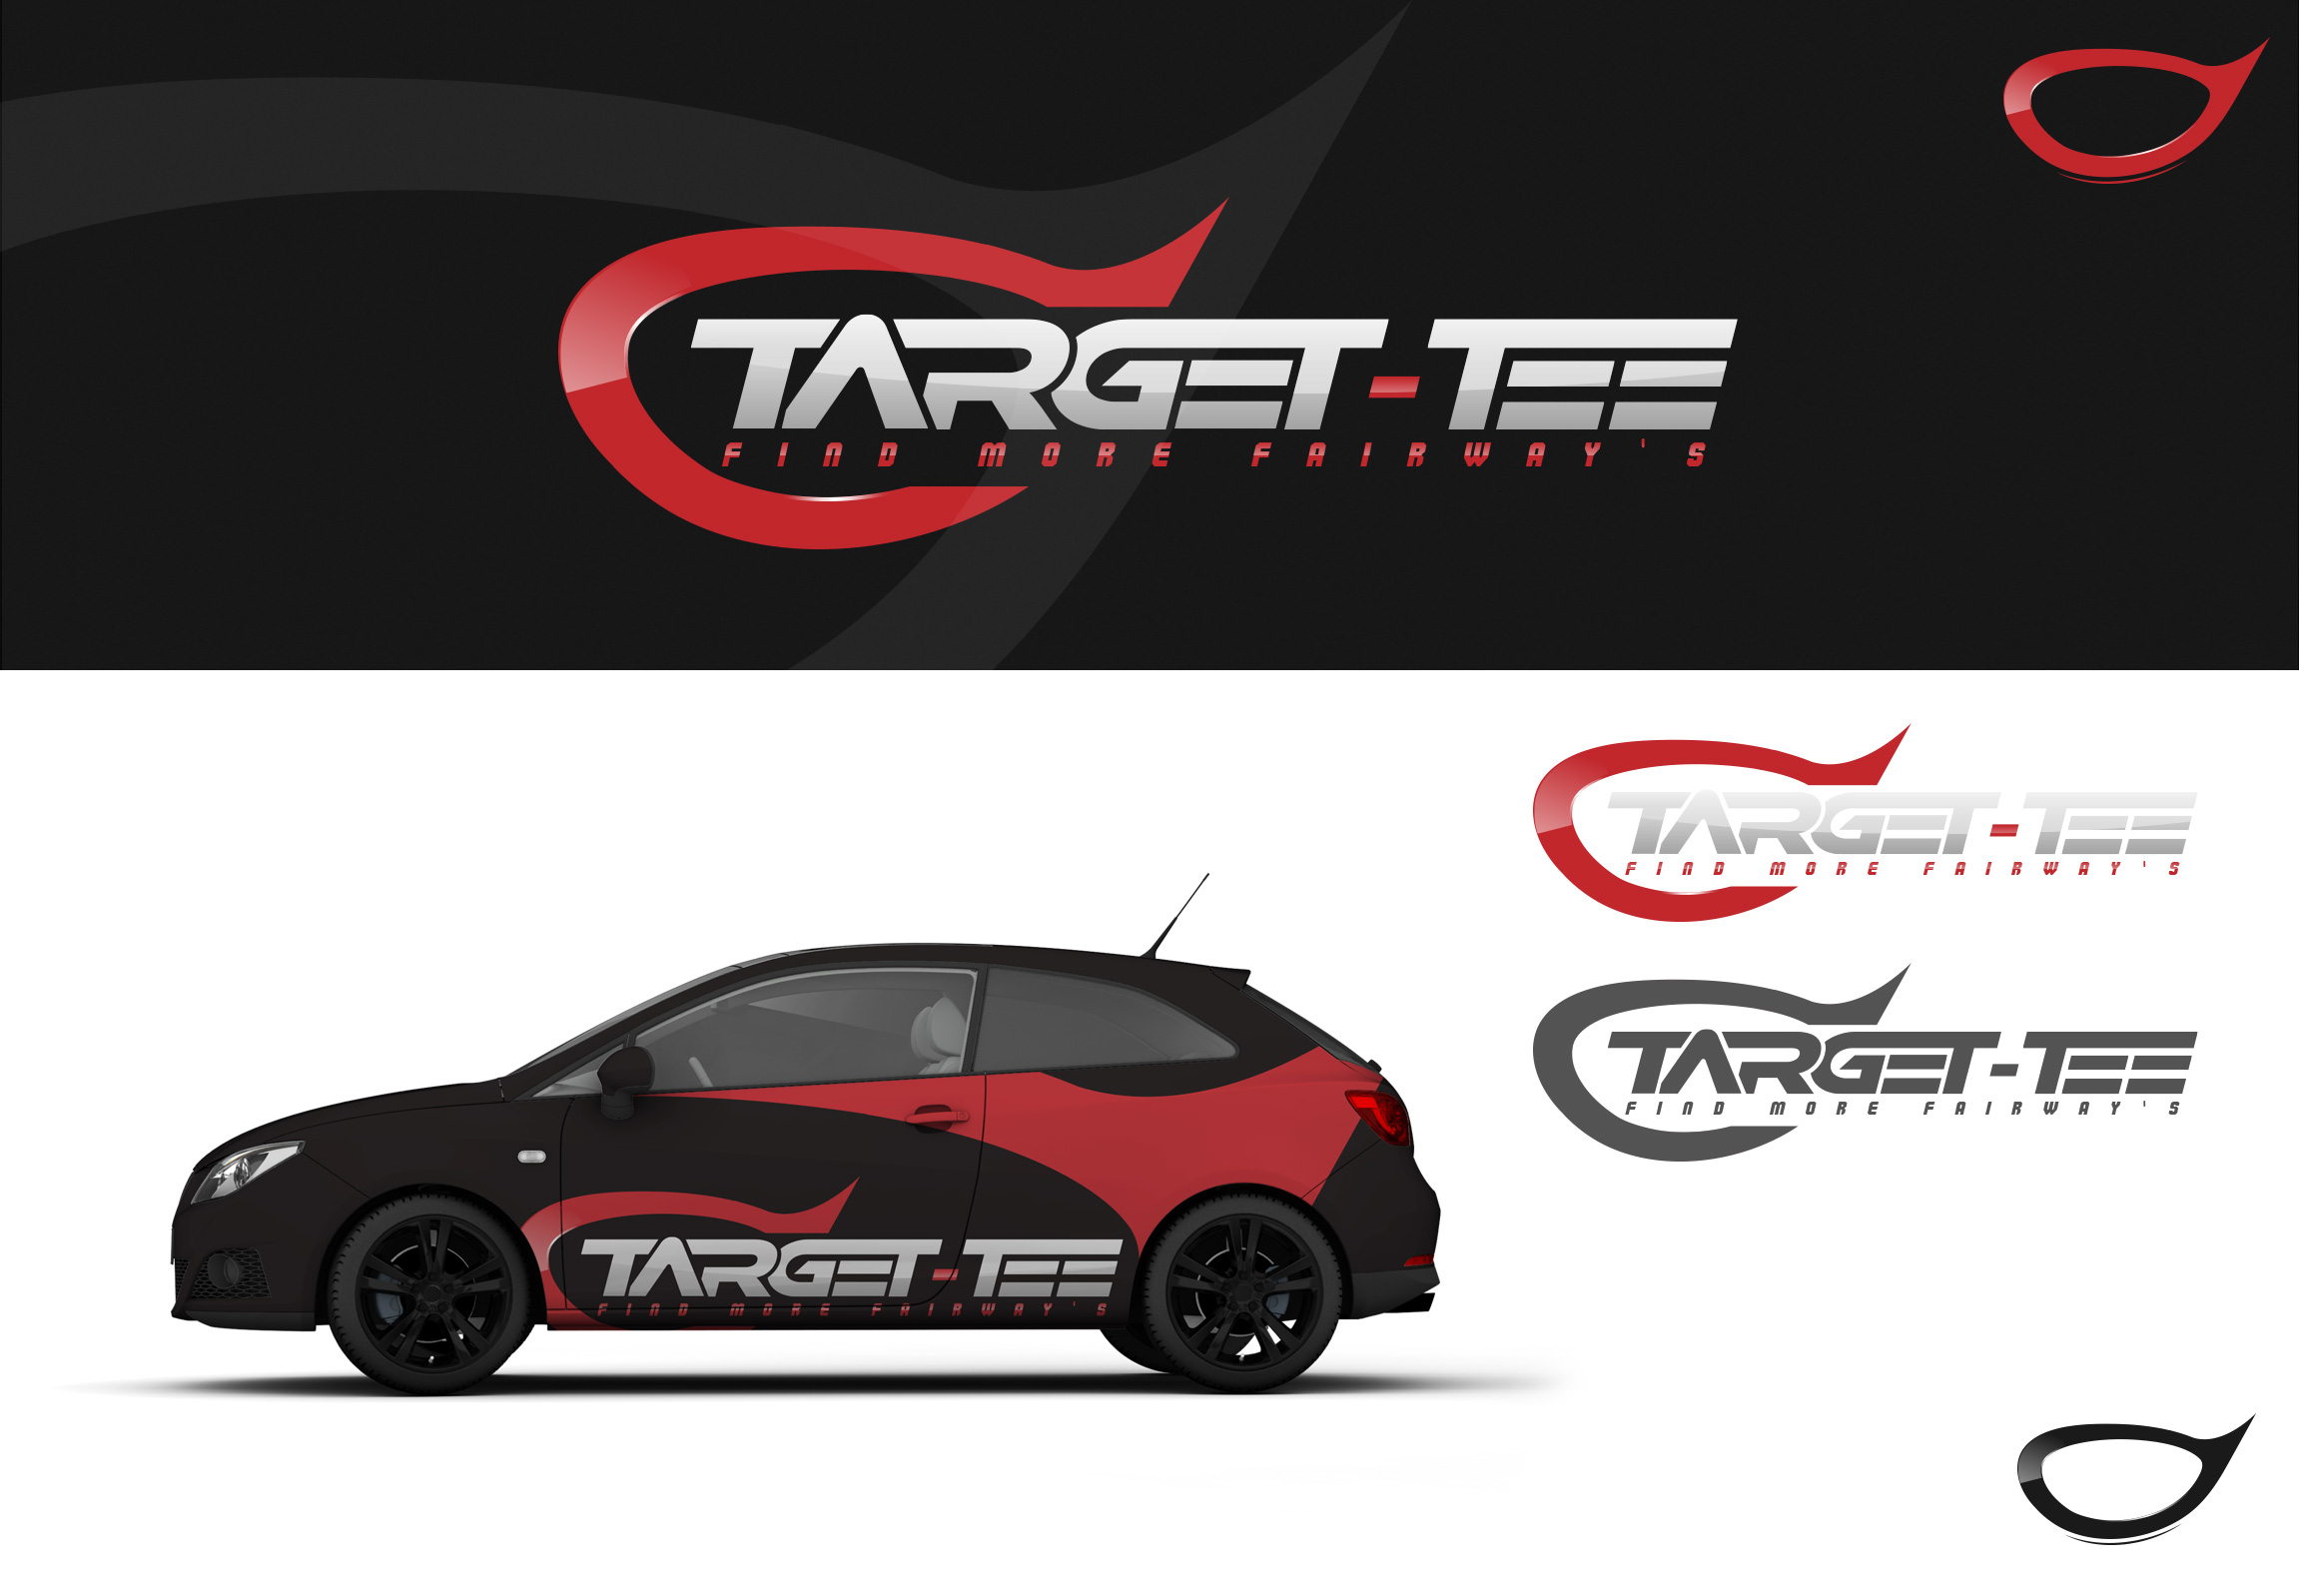 Logo Design by olii - Entry No. 150 in the Logo Design Contest Imaginative Logo Design for TARGET-TEE.